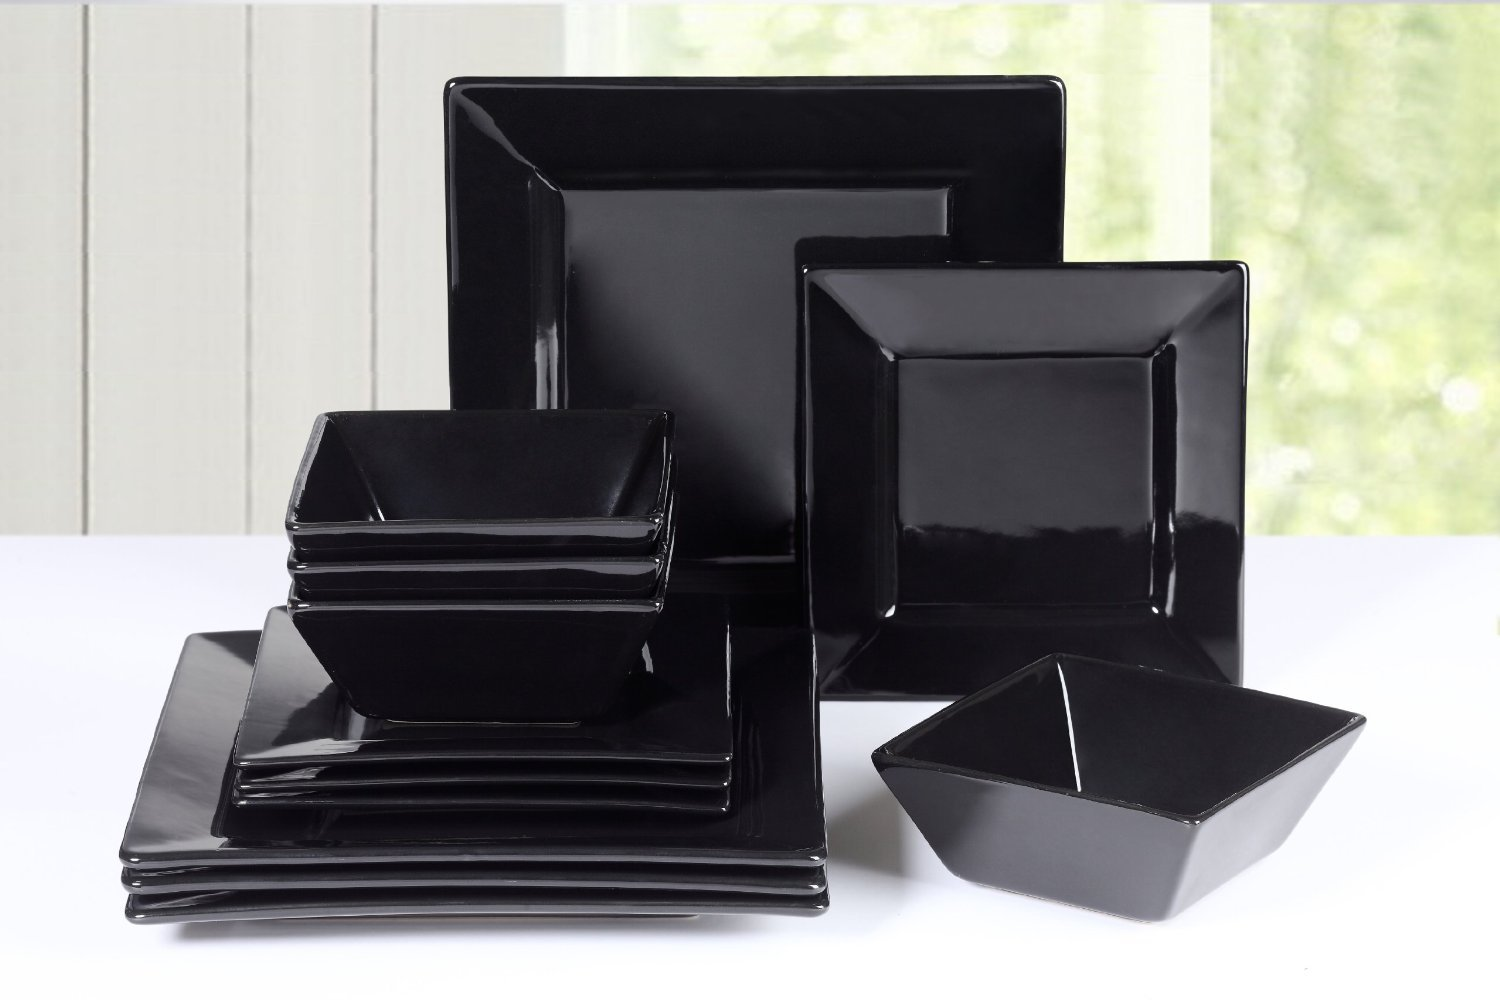 12 Piece Soho Square Dinner Set (black) Waterside Fine China